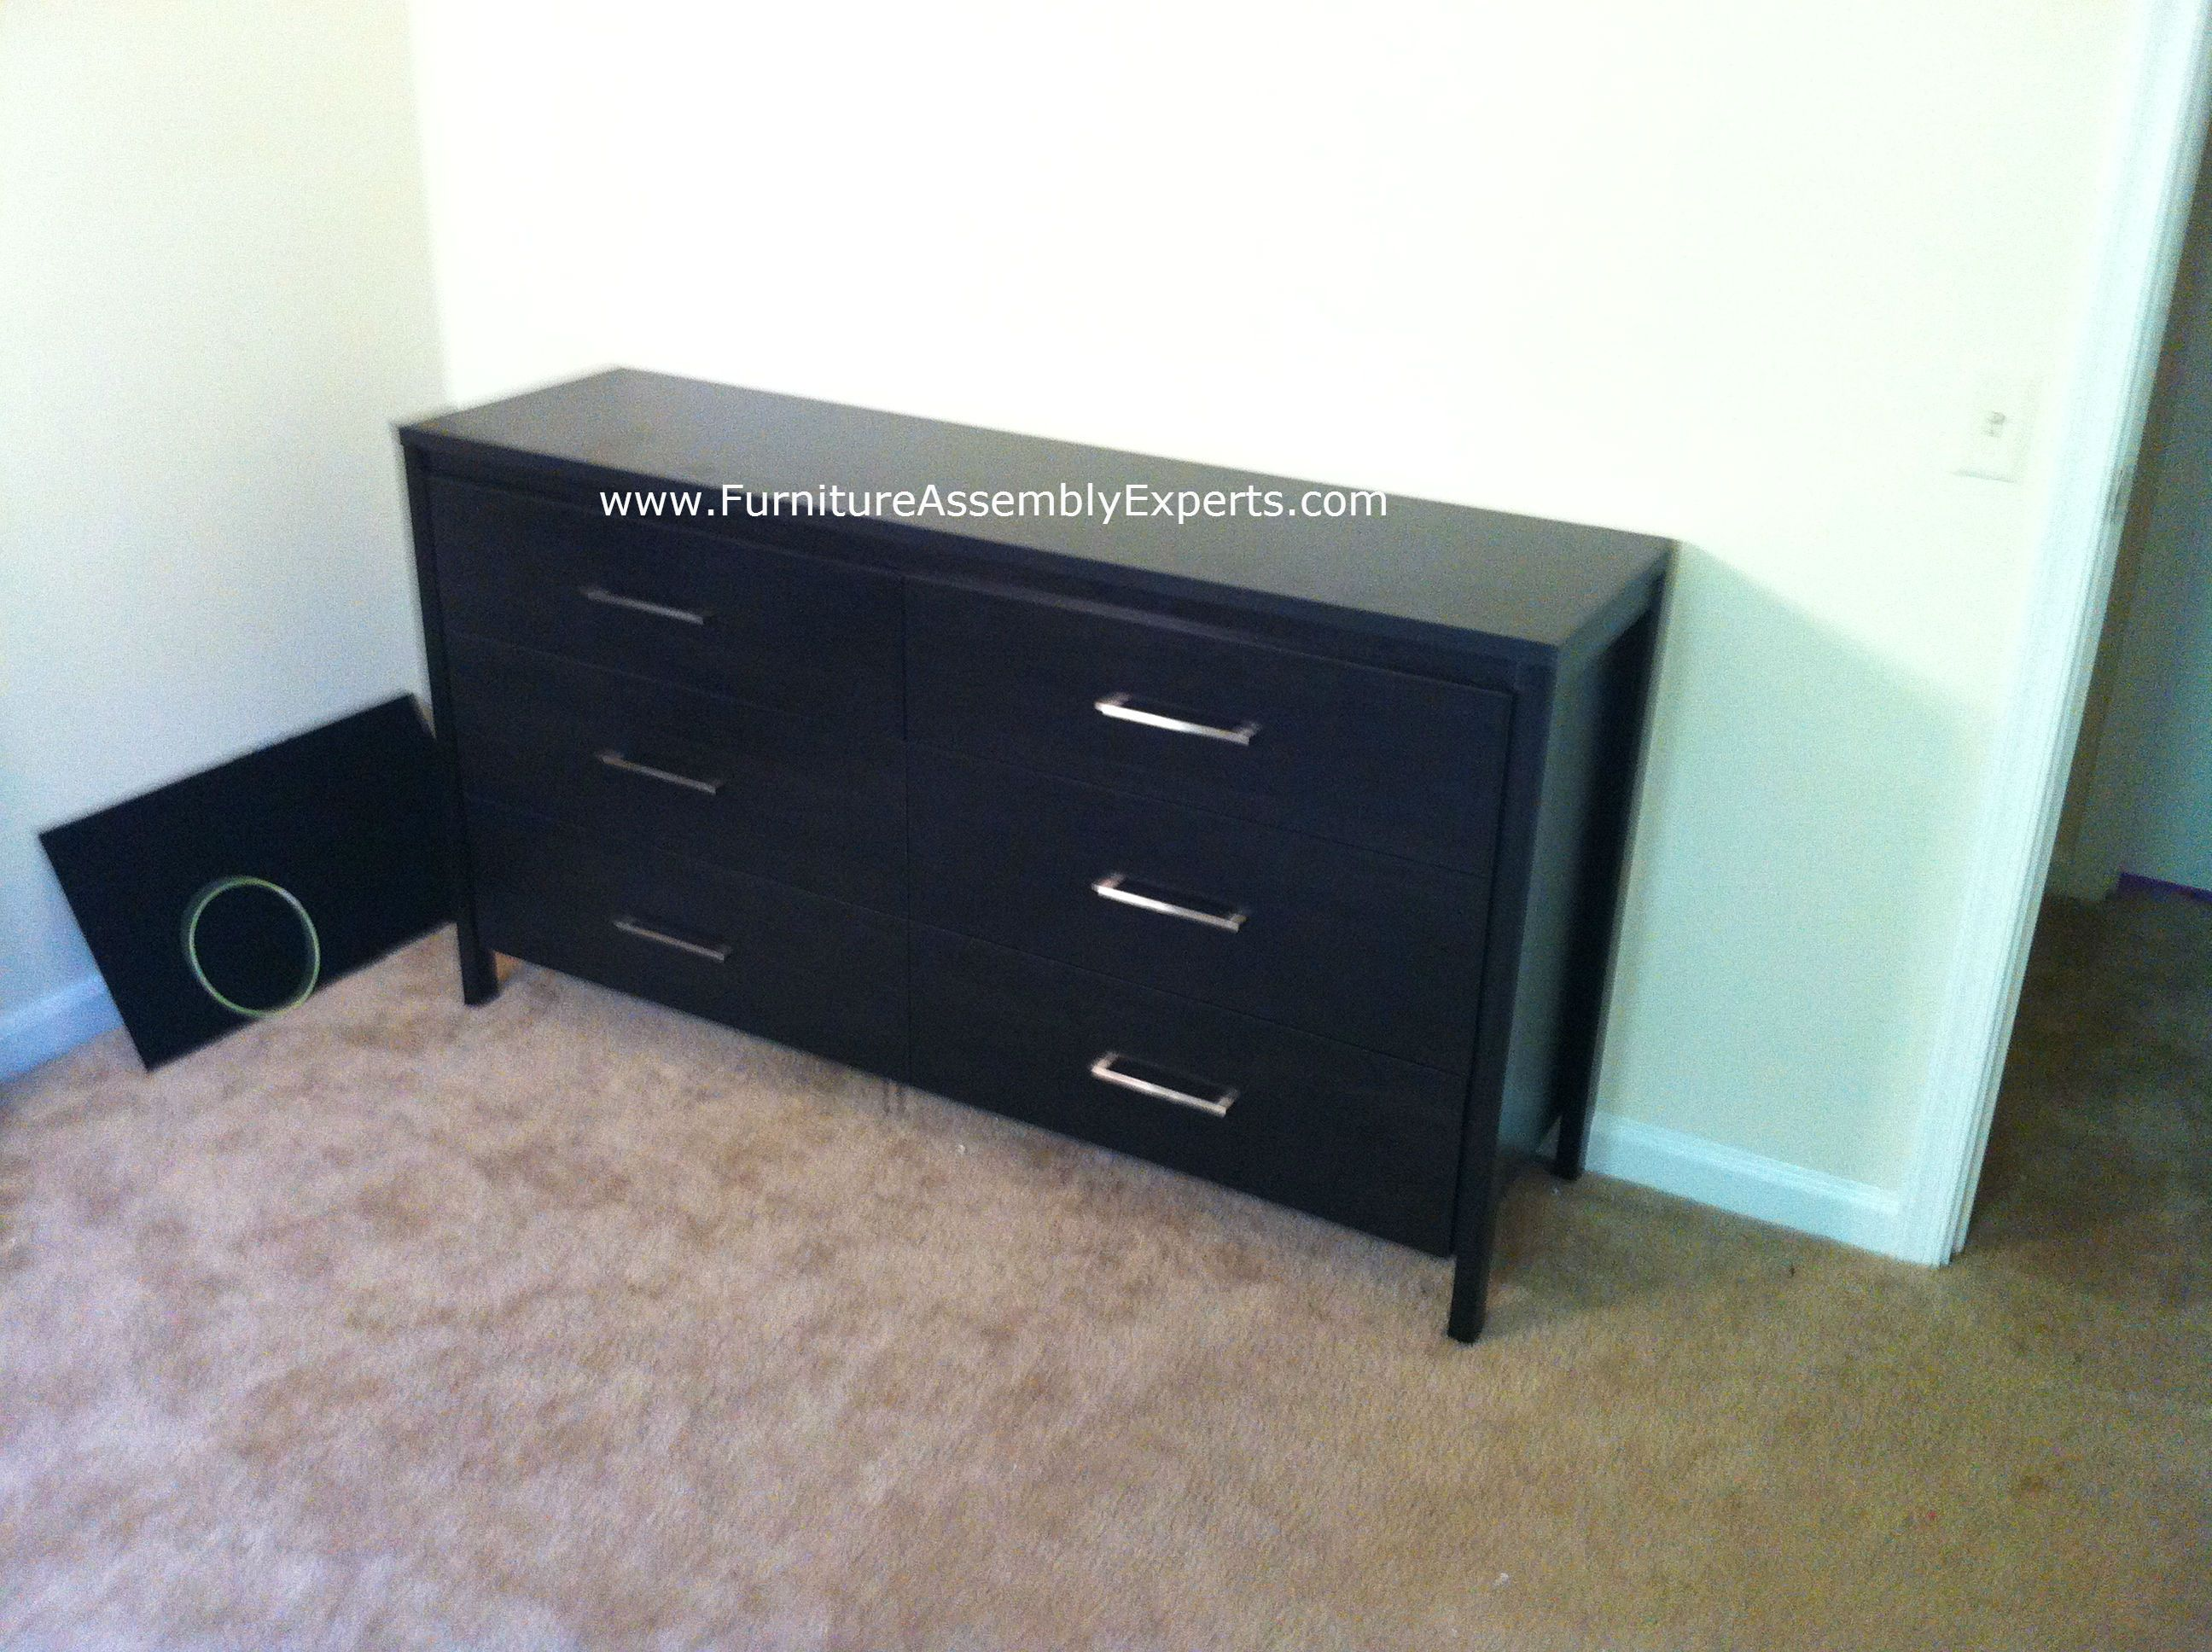 South Shore 6 Drawers Dresser Assembled In Baltimore Md By Furniture Assembly Experts Llc Ikea Furniture Assembly Furniture Assembly Furniture